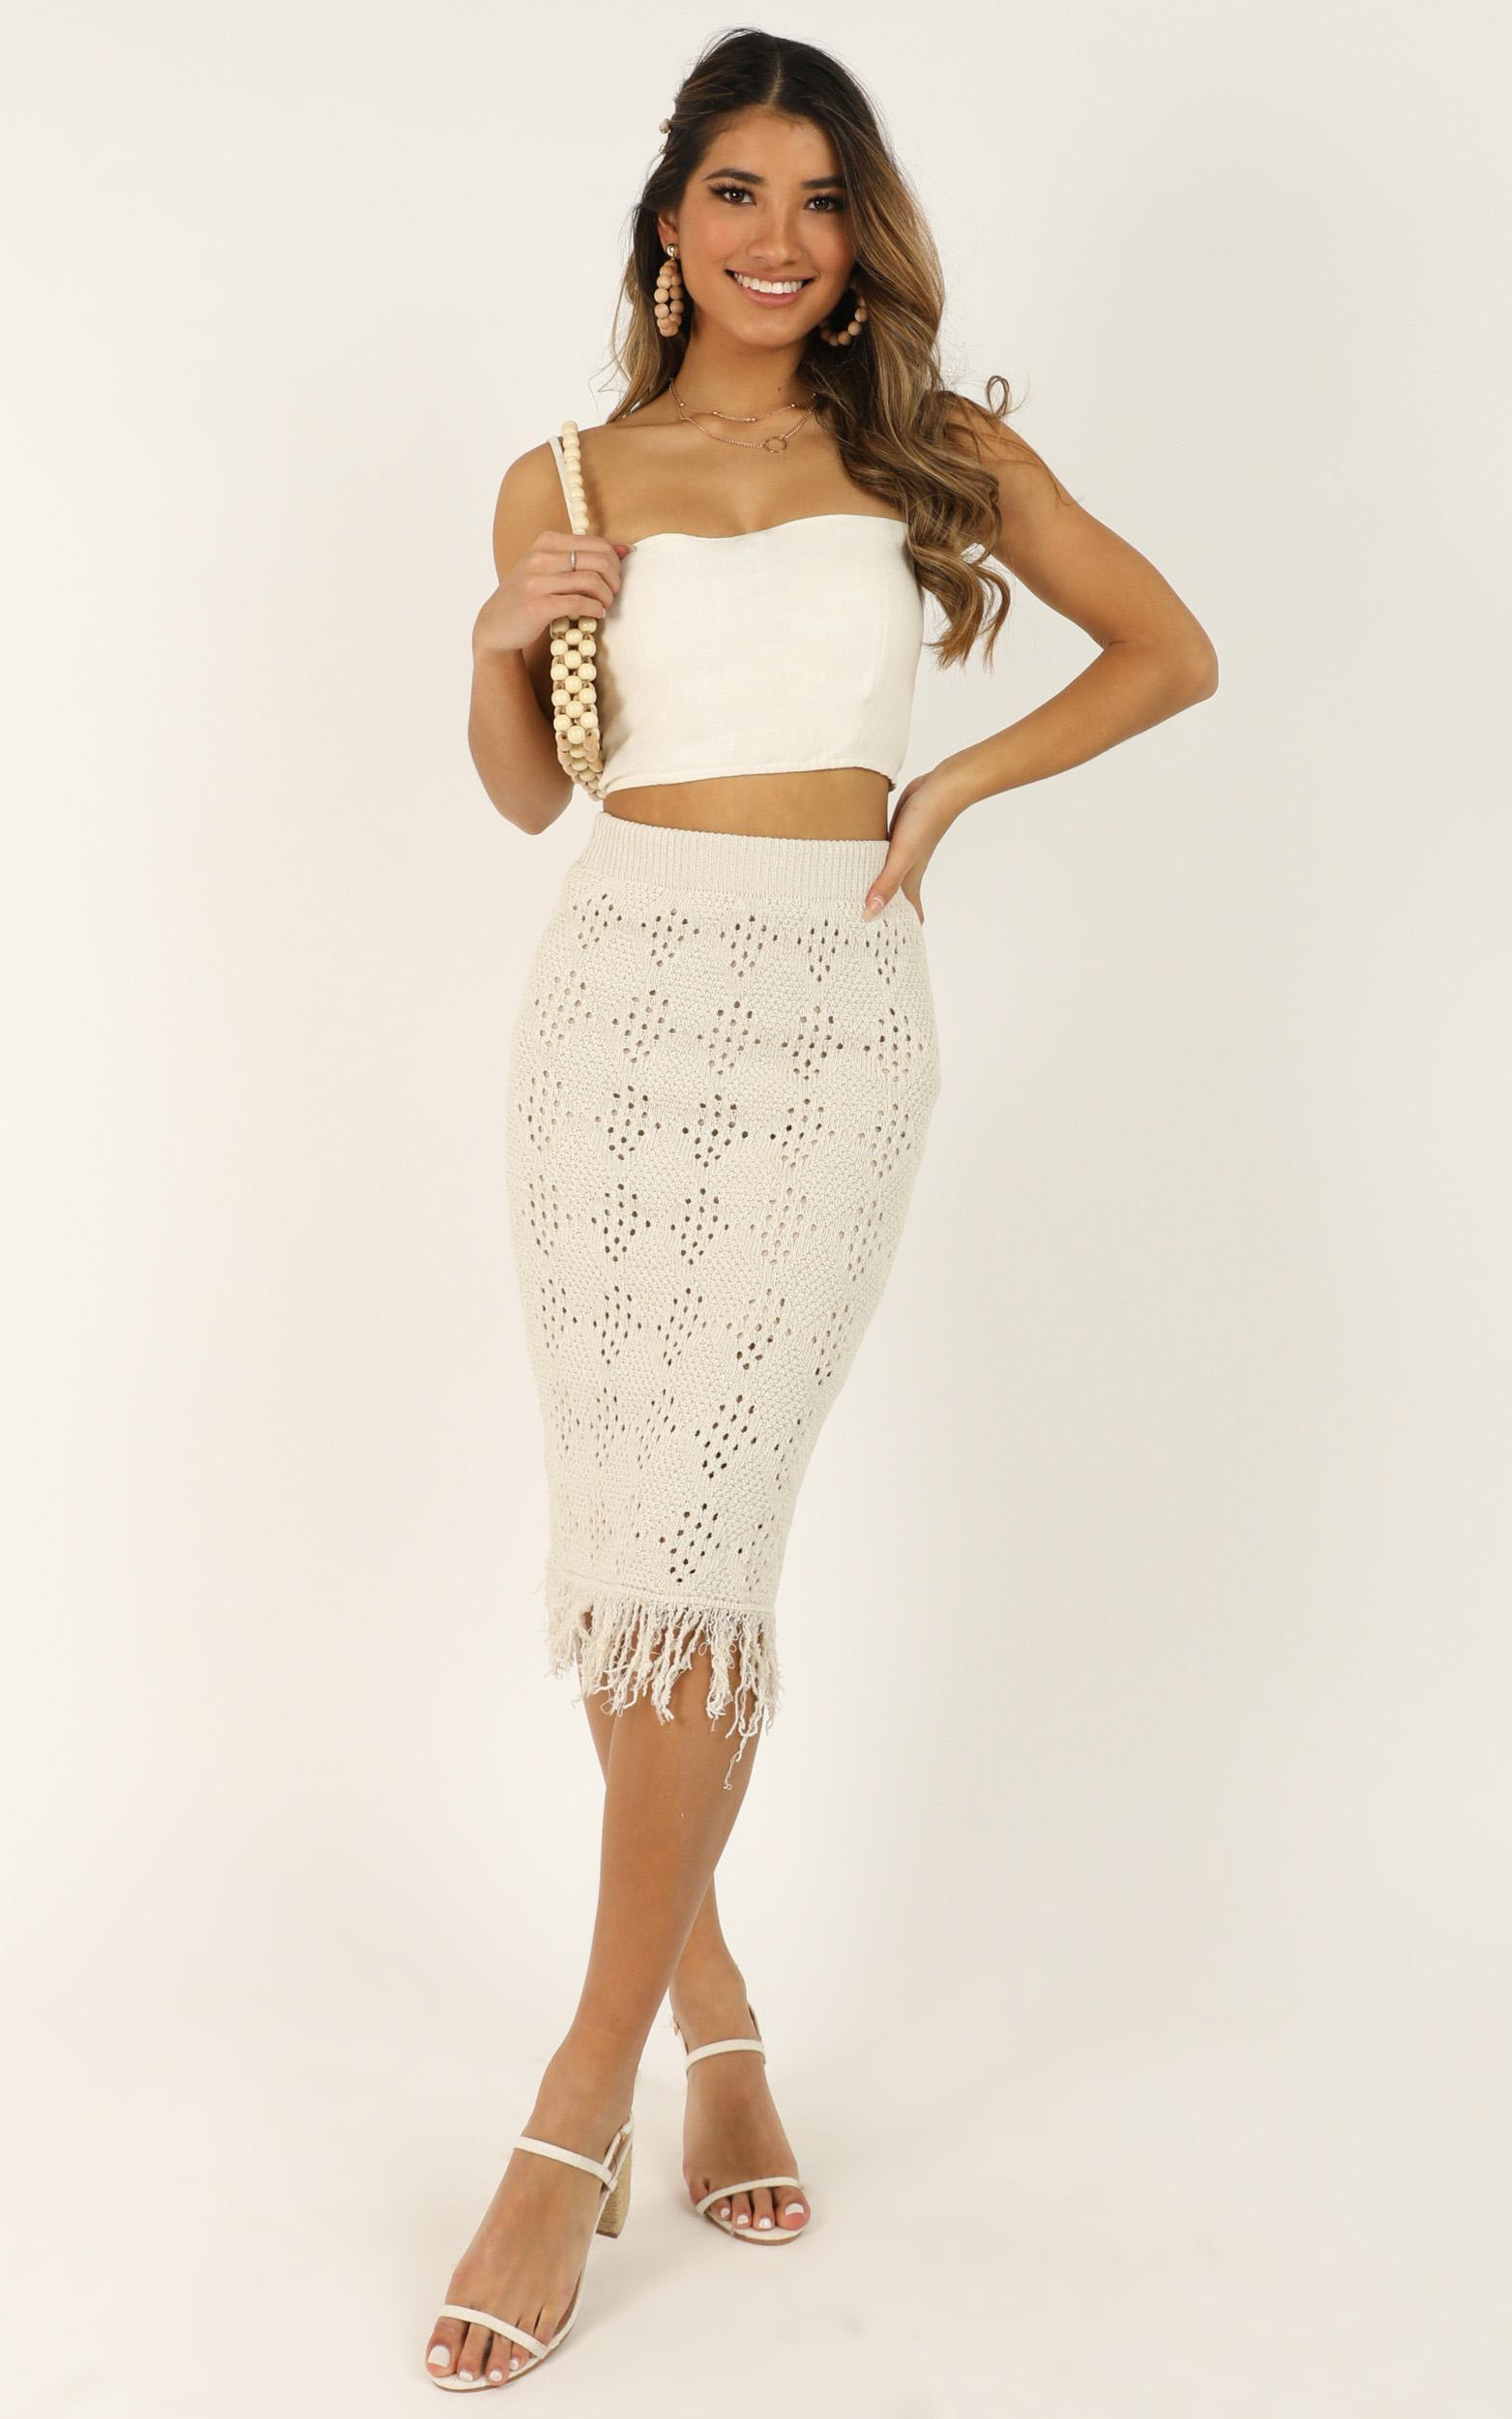 You Got Me Now crochet skirt in cream - 12 (L), Cream, hi-res image number null